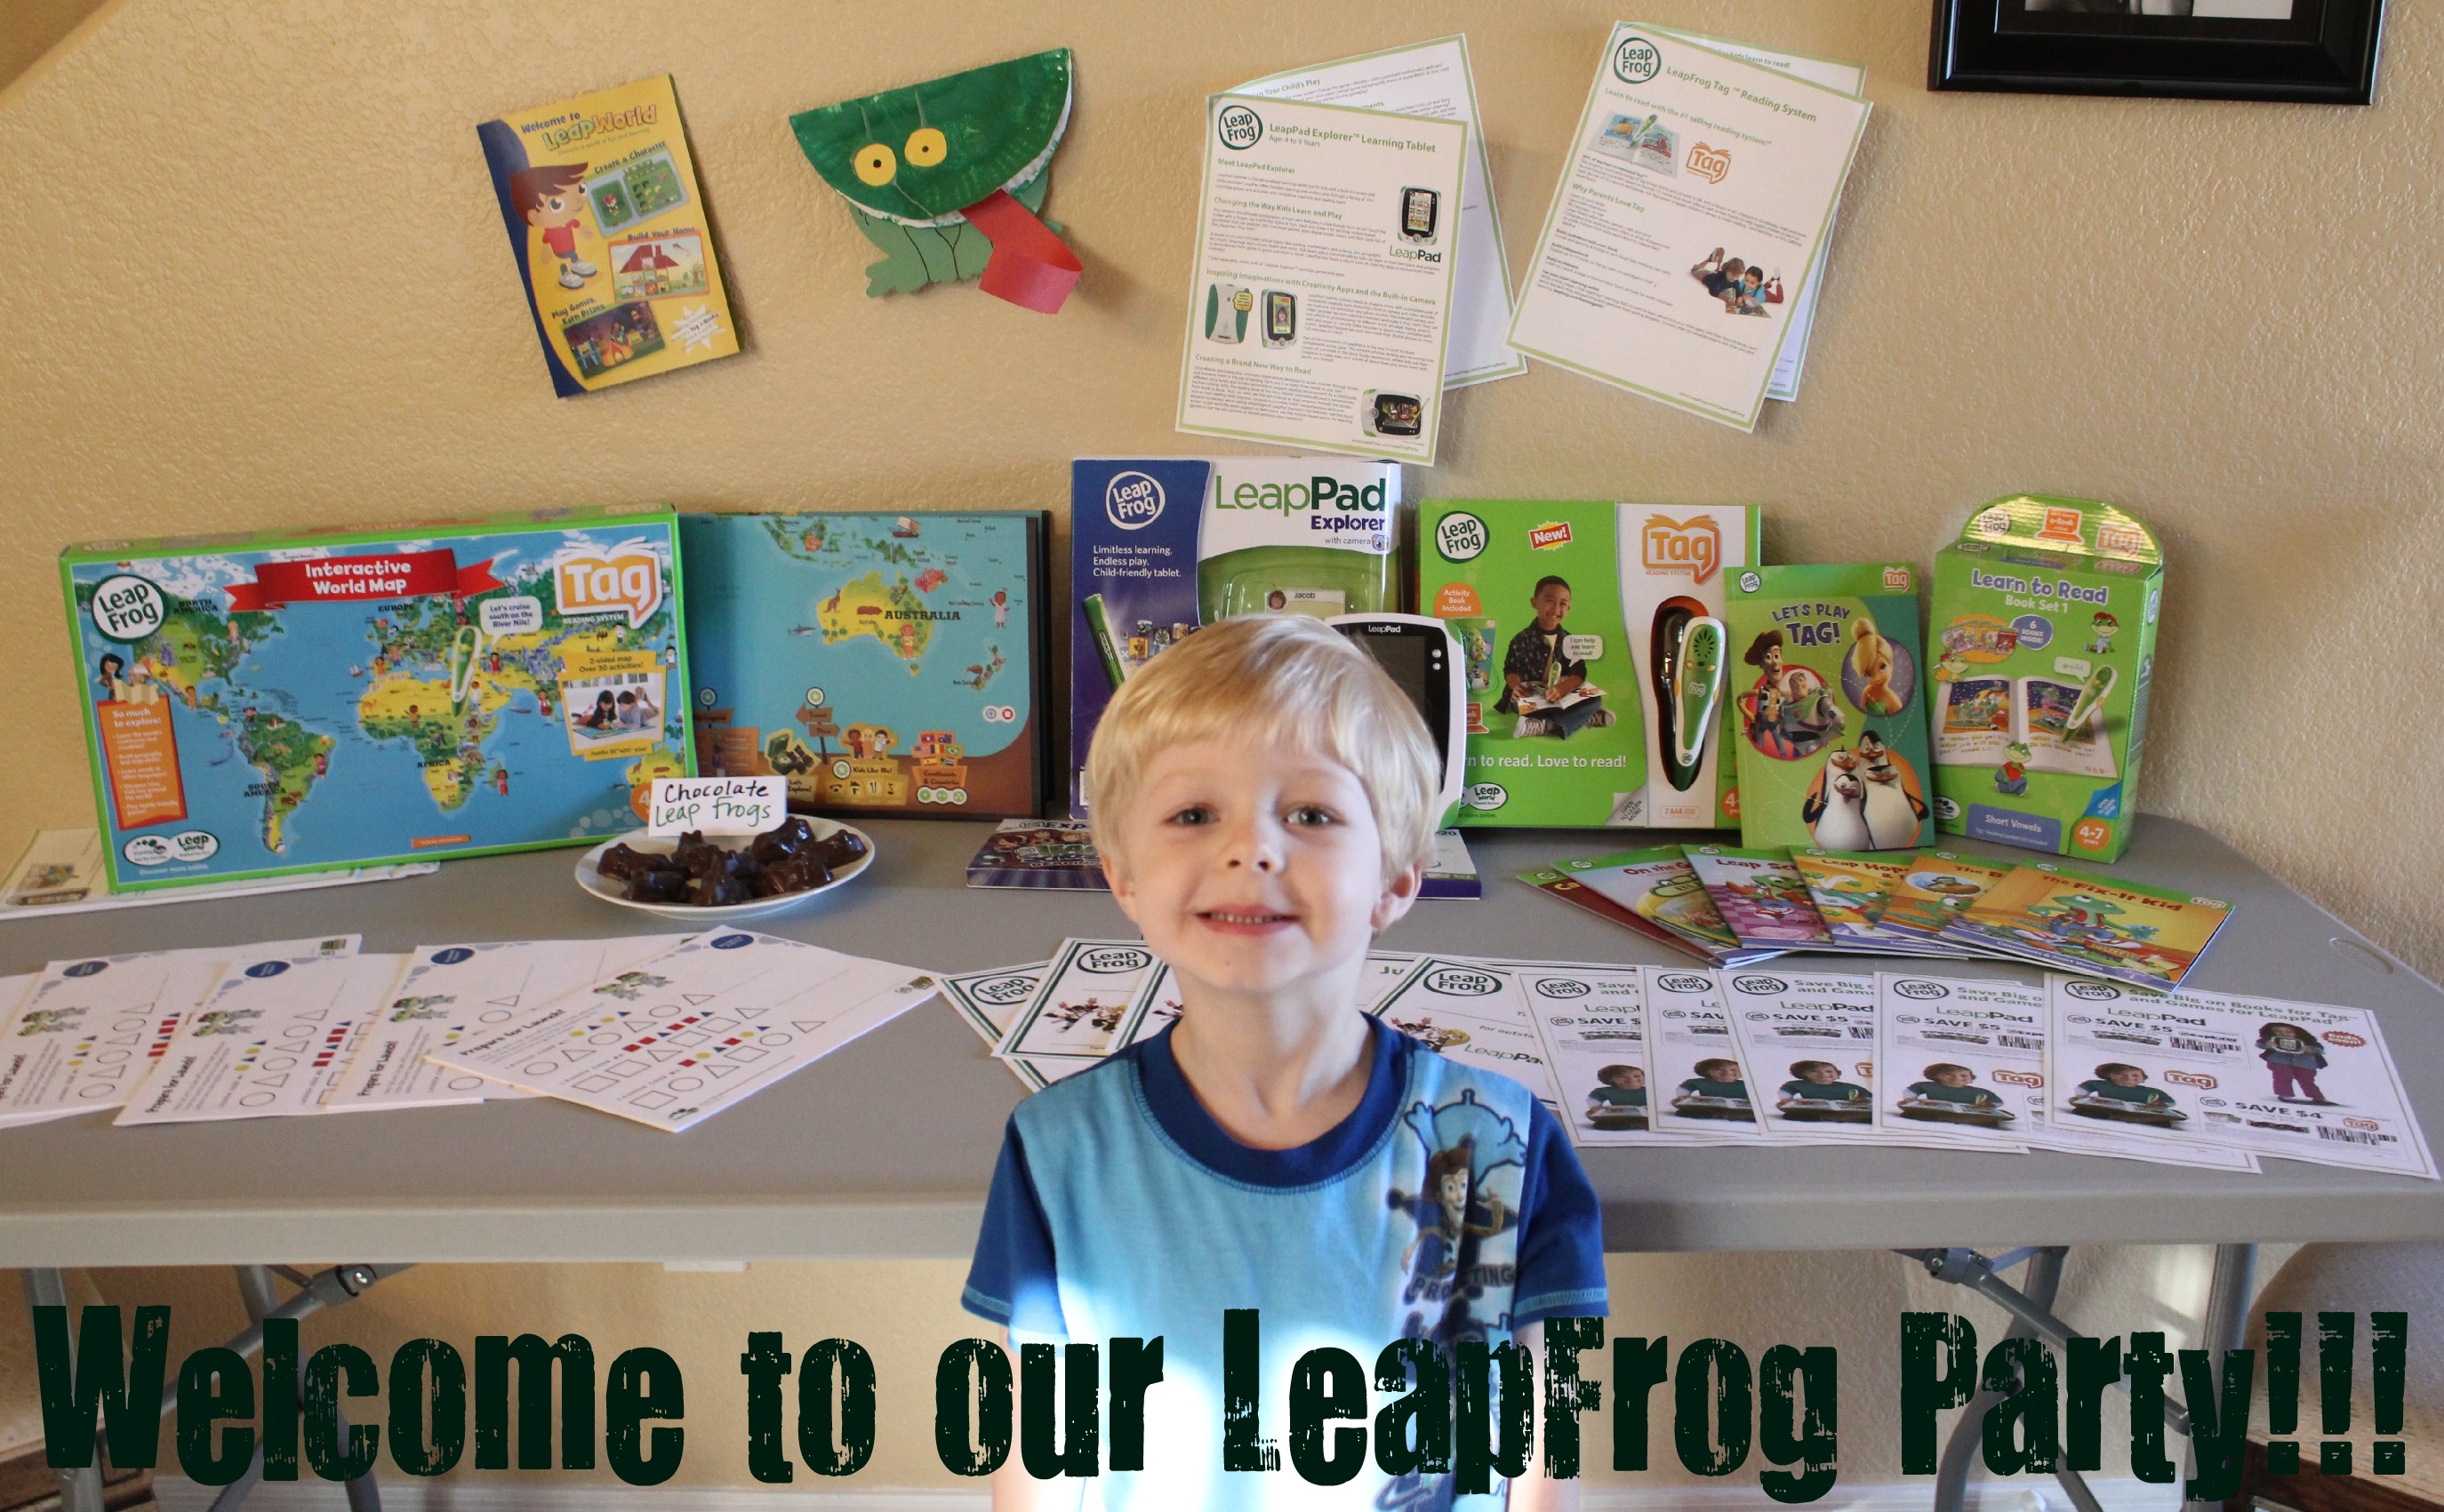 Create and craft coupons - Leapfrog Learn Create And Share Party Review Of Leapfrog Leappad Tag Reading System